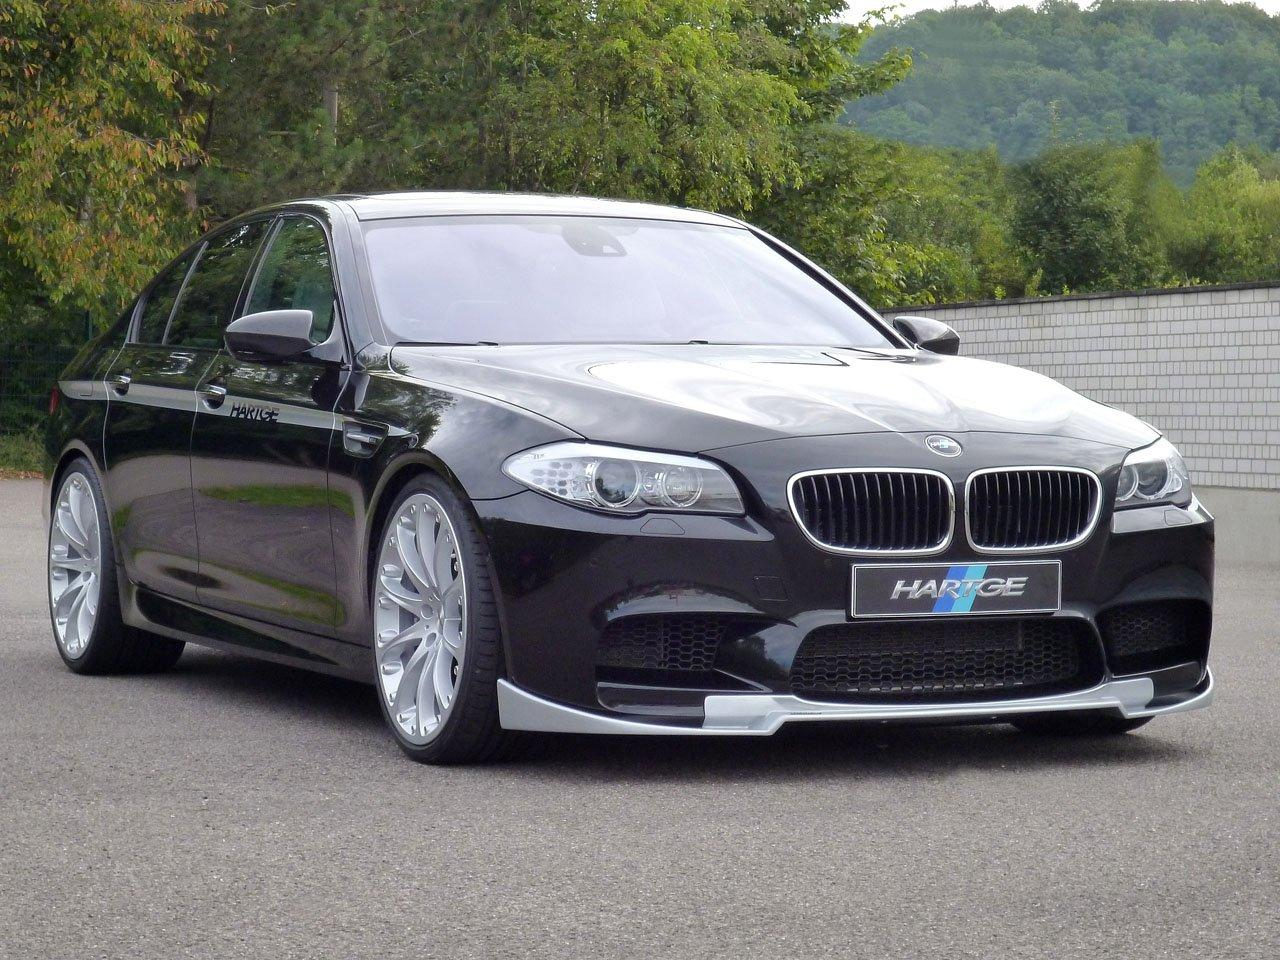 2018 Bmw 4 Series Review >> Hartge rolls out BMW M5 tuning package - ForceGT.com